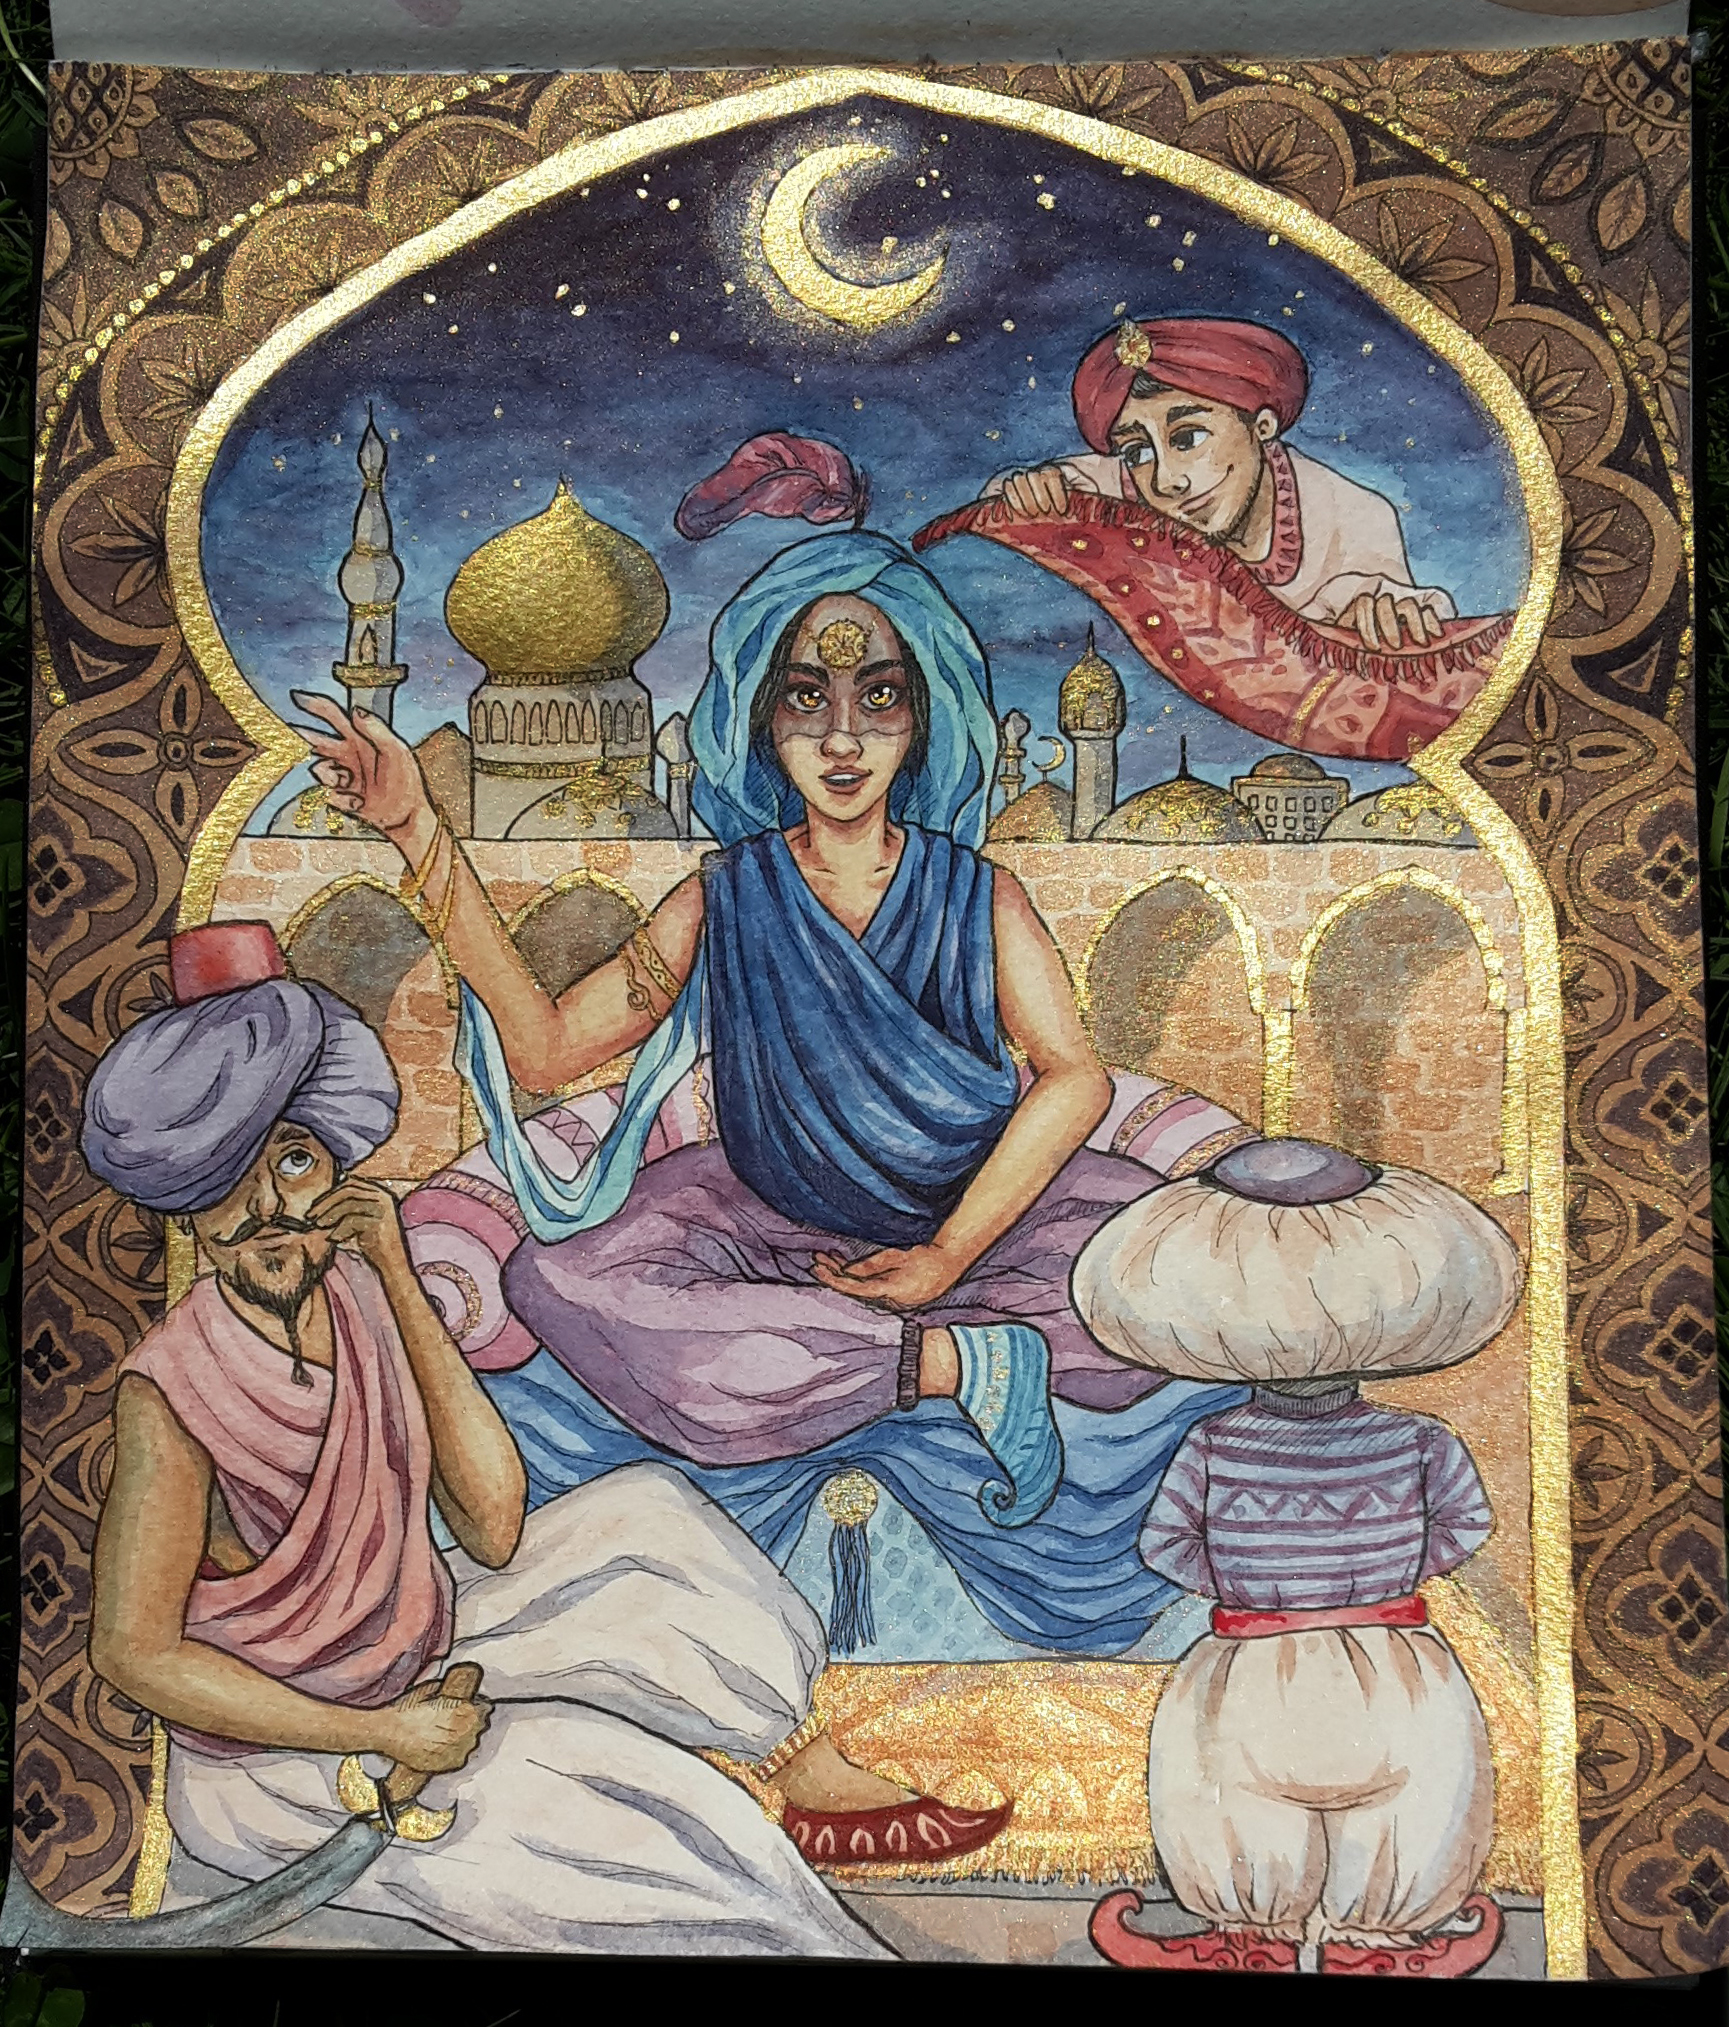 One Thousand and One Nights of Tales to be told...